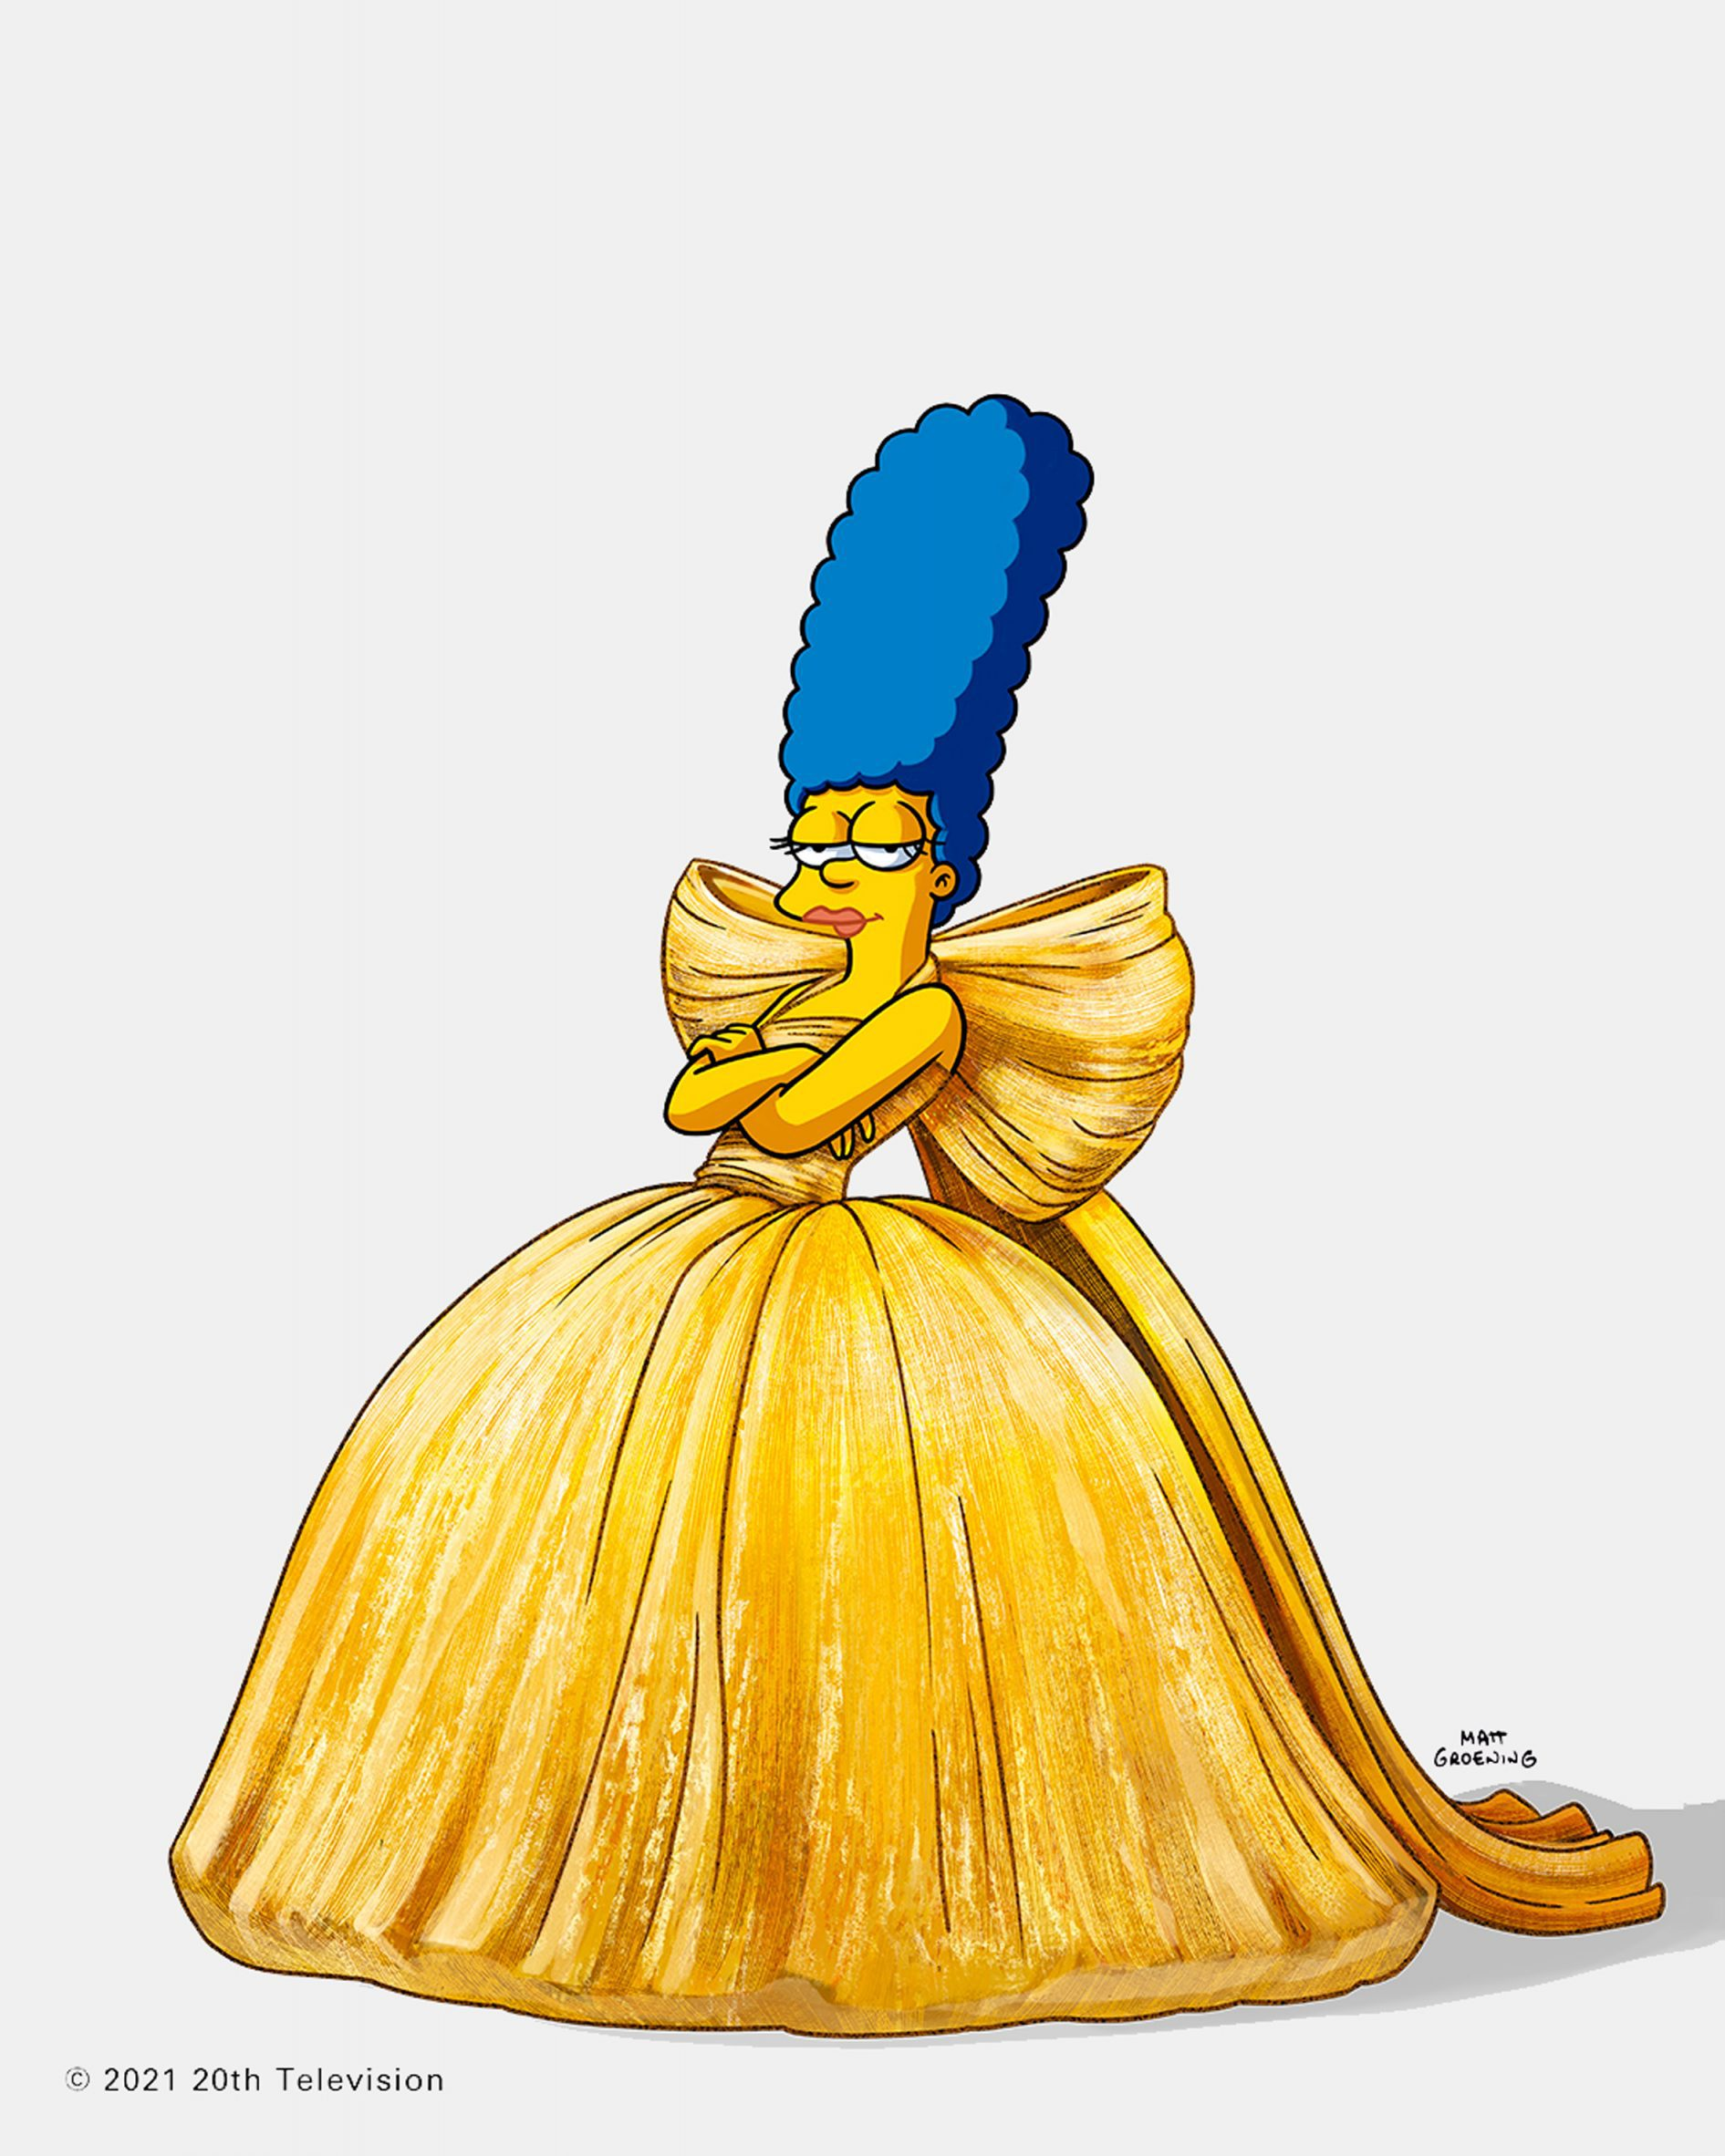 Marge simpson is pictured posing wearing a balenciaga dress